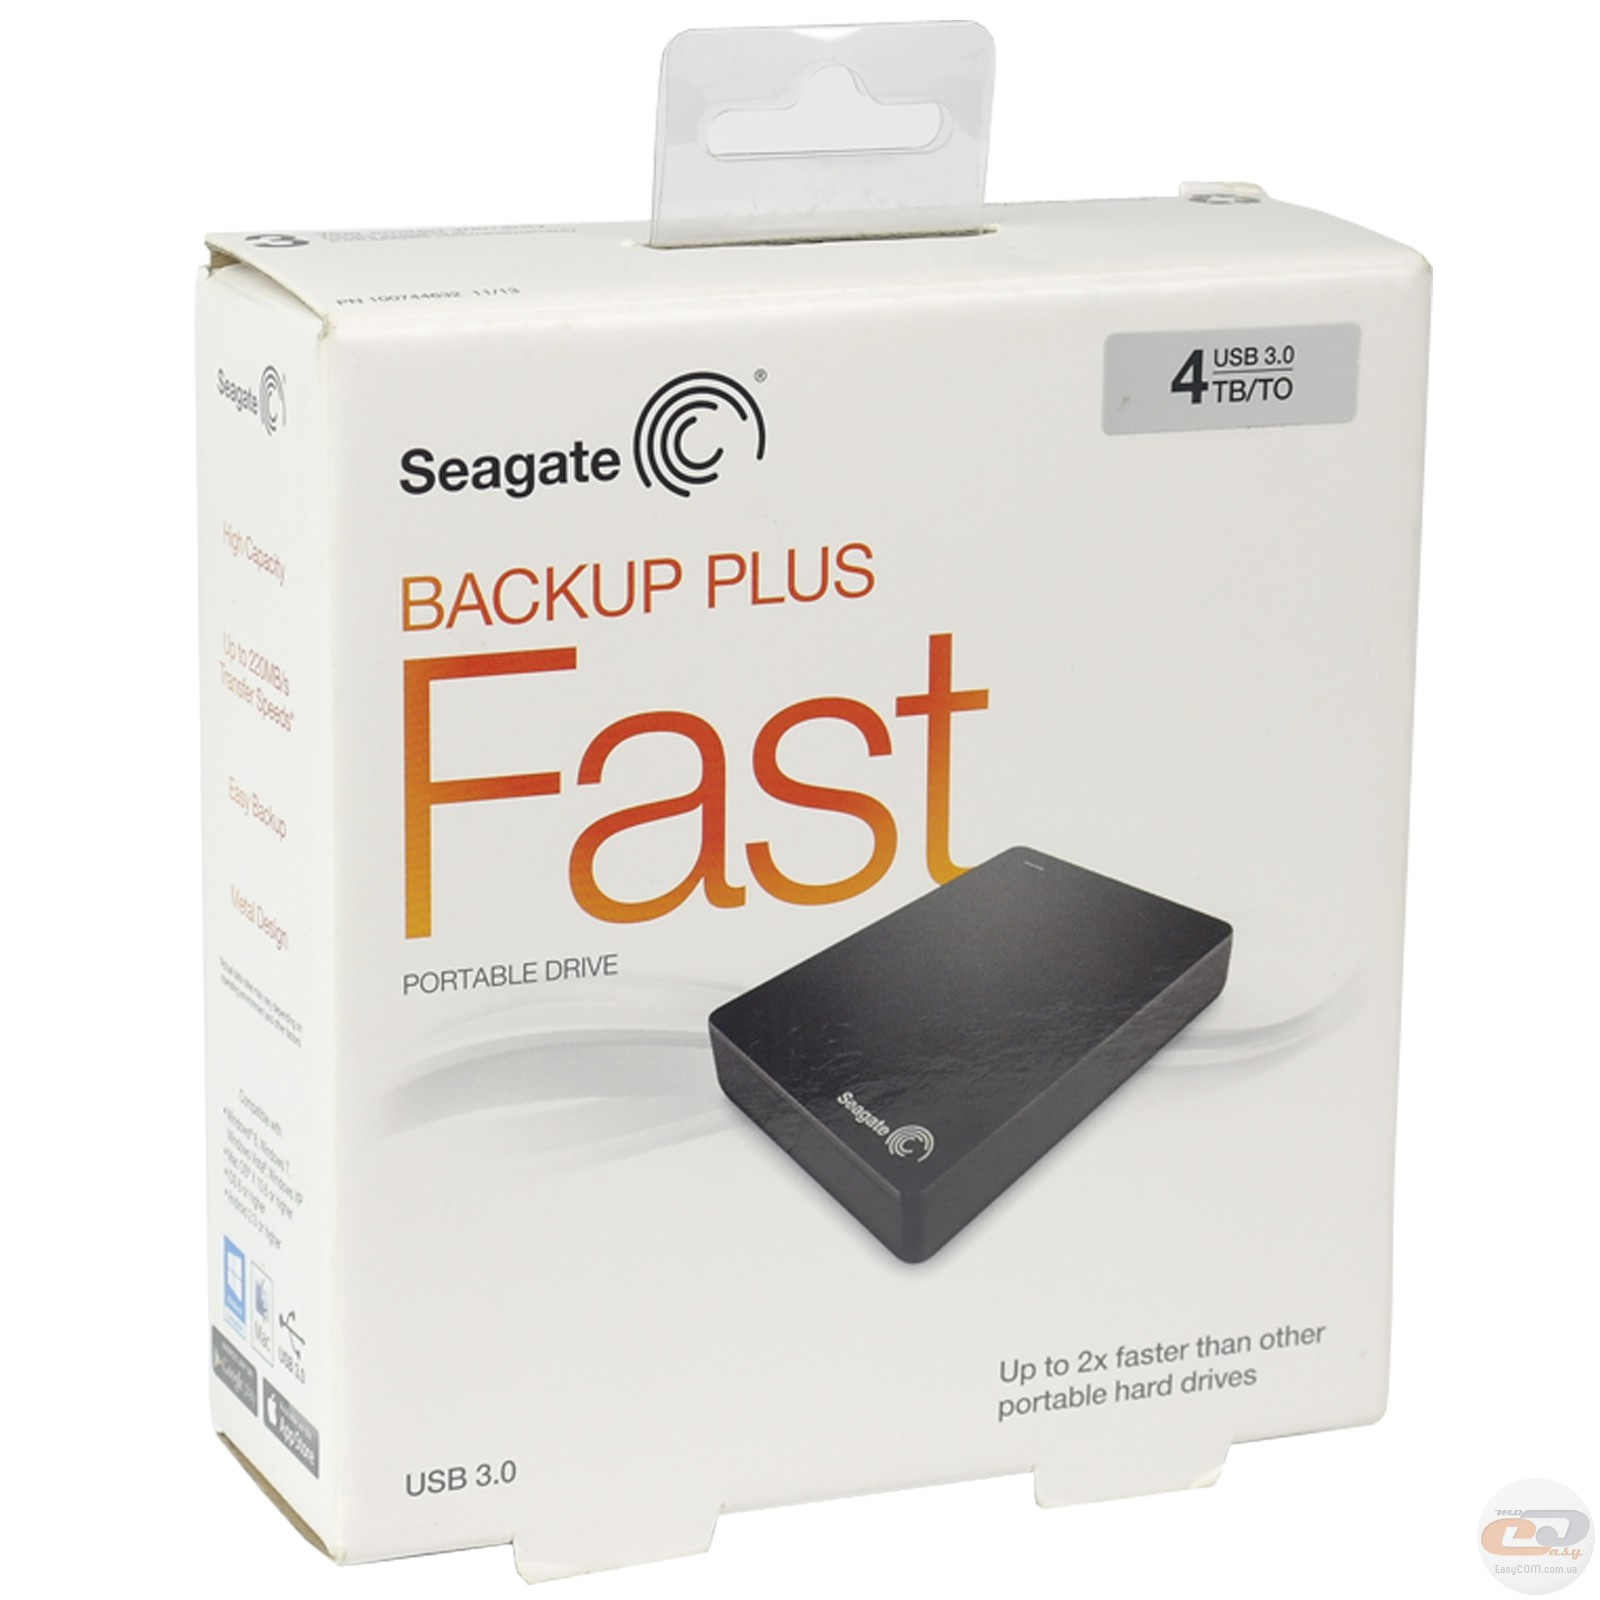 how to know the warranty period of seagate hard disk